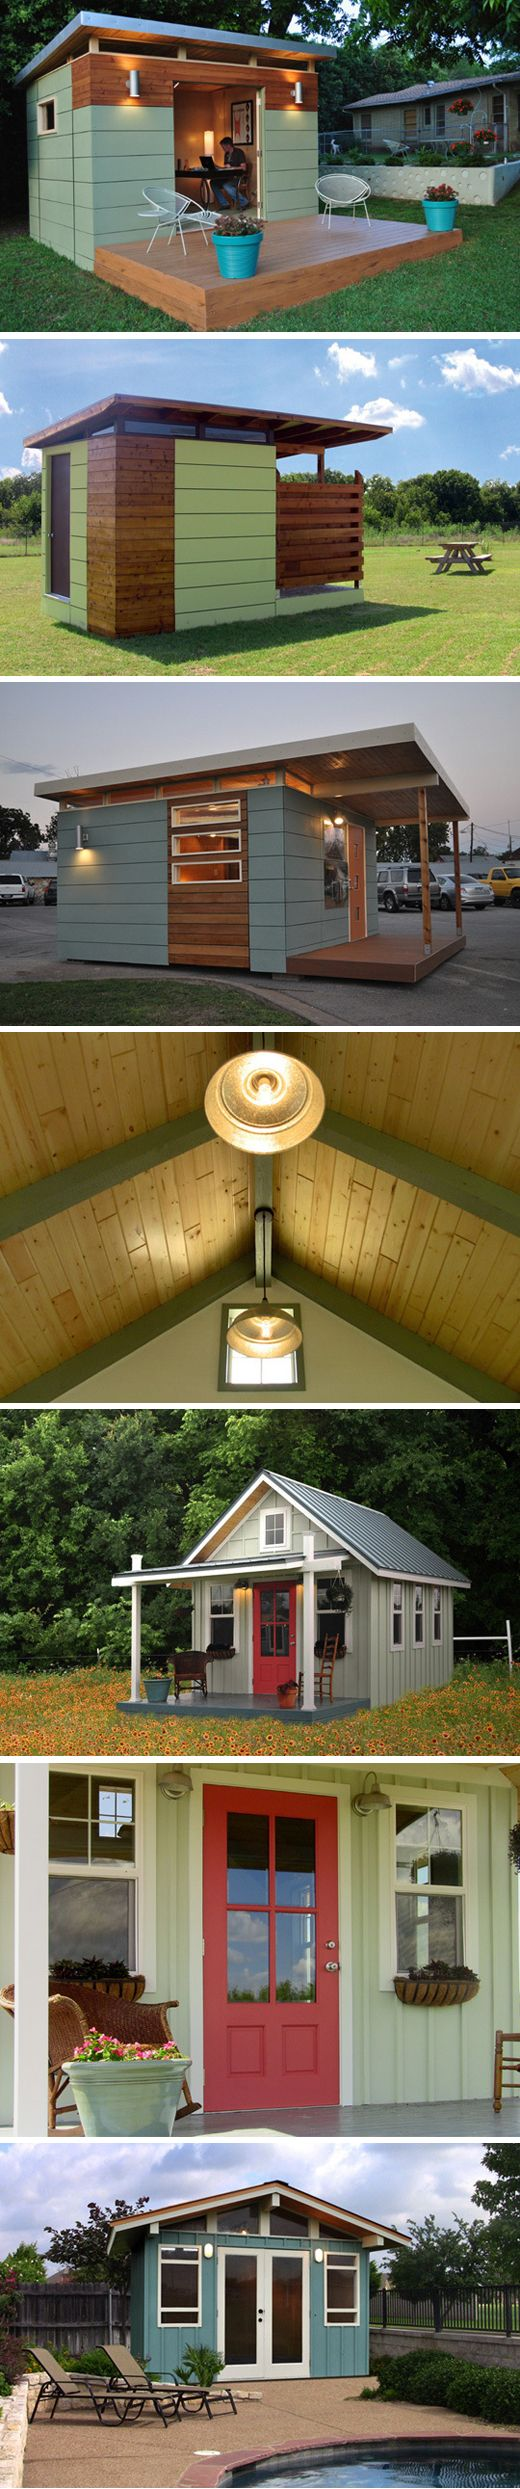 ^ 1000+ ideas about Prefab Sheds on Pinterest Modern shed, Shed ...